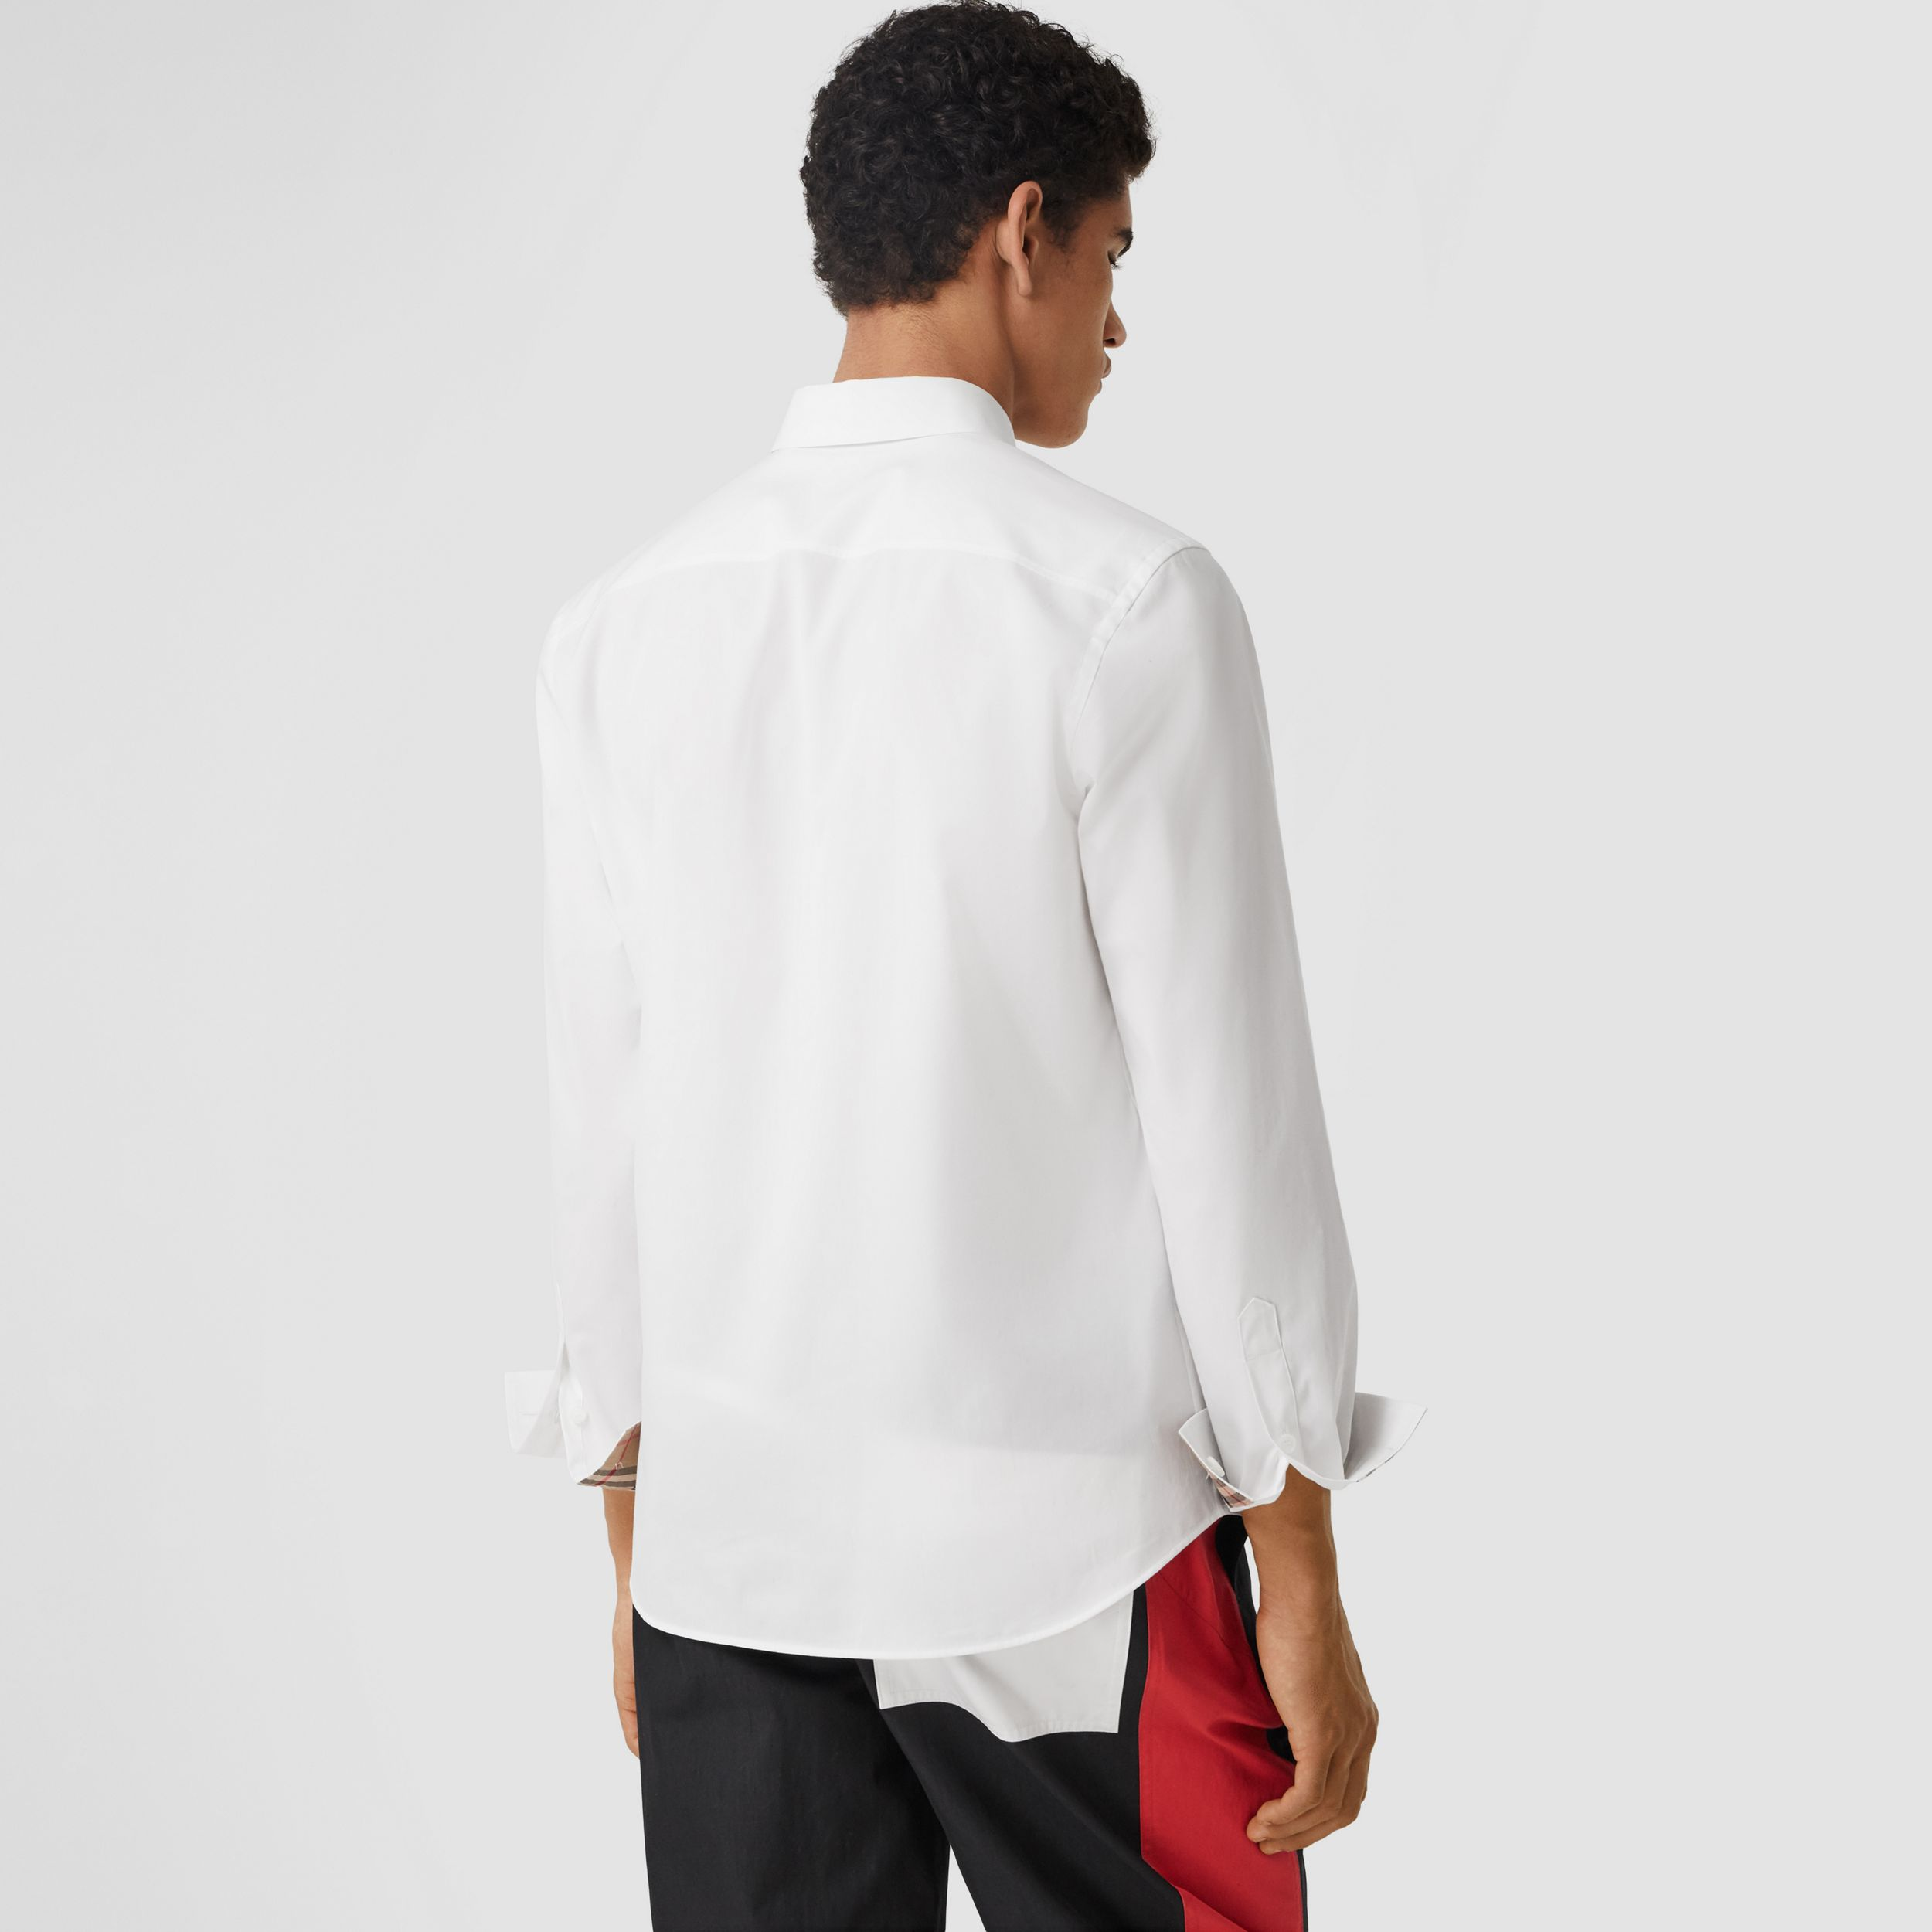 Slim Fit Monogram Motif Stretch Cotton Poplin Shirt in White - Men | Burberry - 3